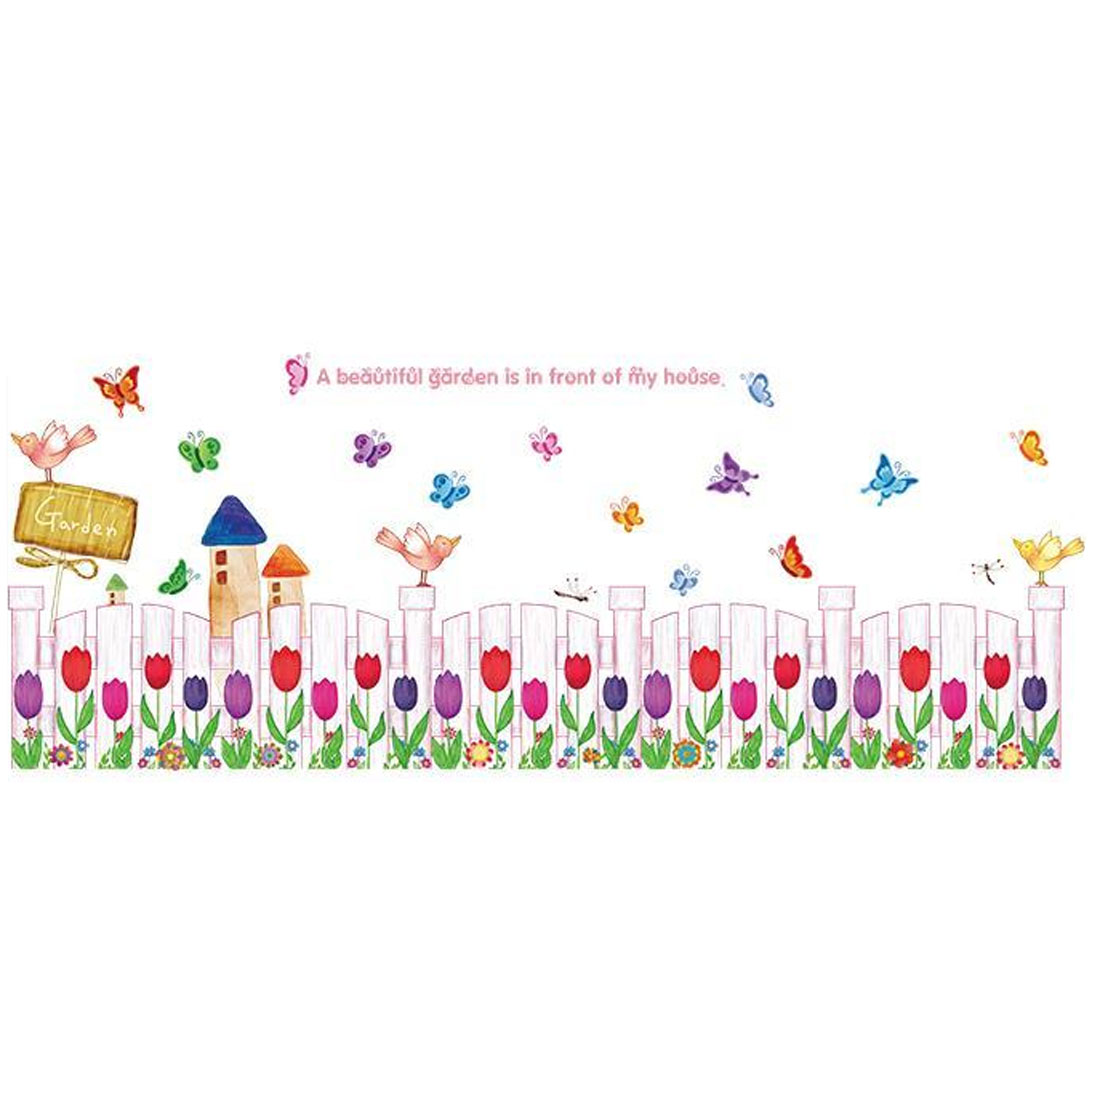 Home Bedroom PVC Fence Tulip Printed Removable Decoration Wall Sticker Decal Multicolor